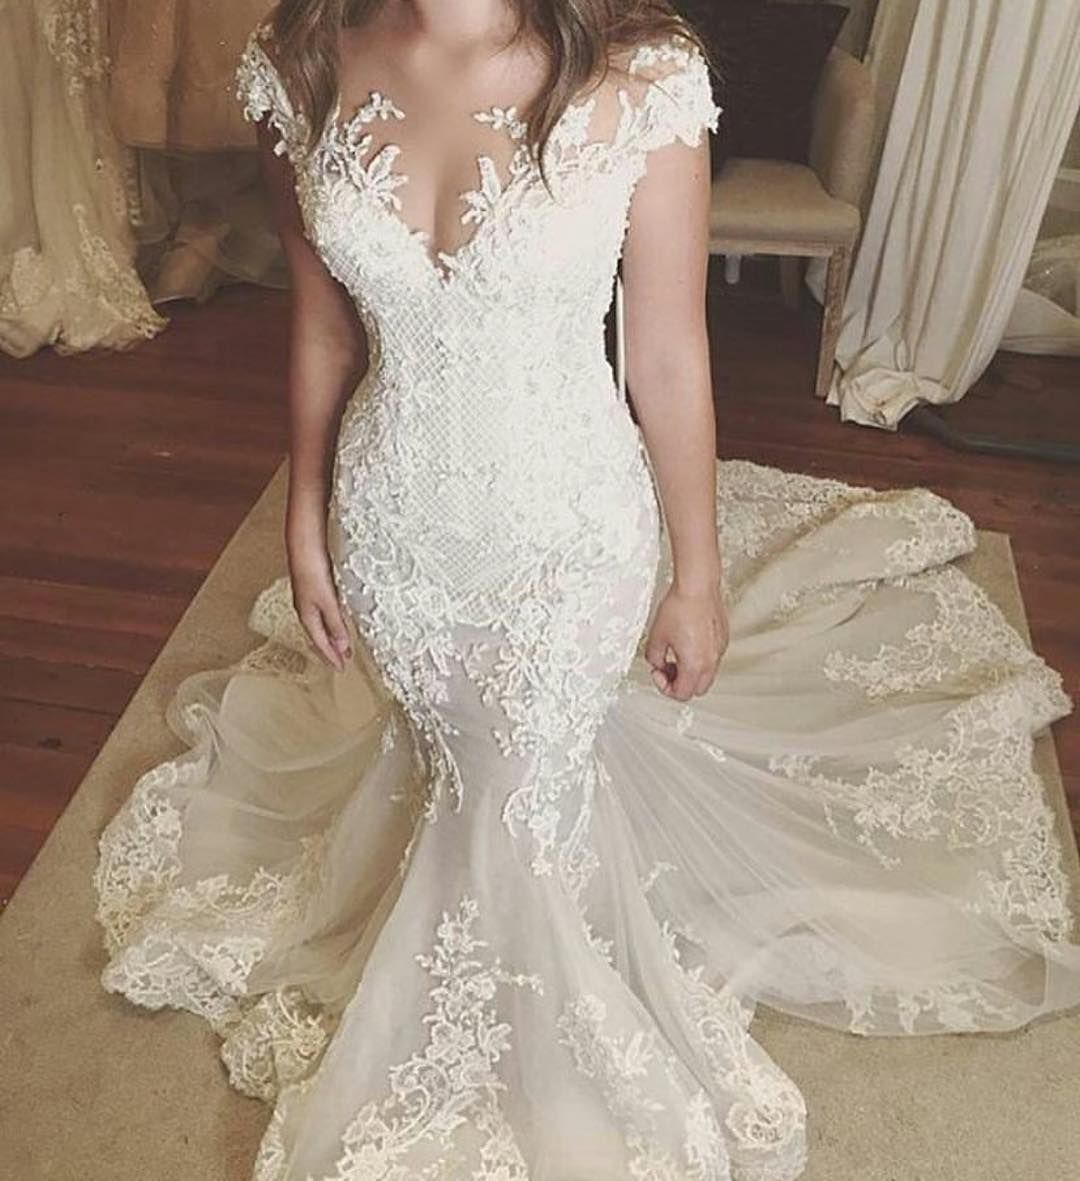 Inspired wedding dresses and recreations of couture designs by